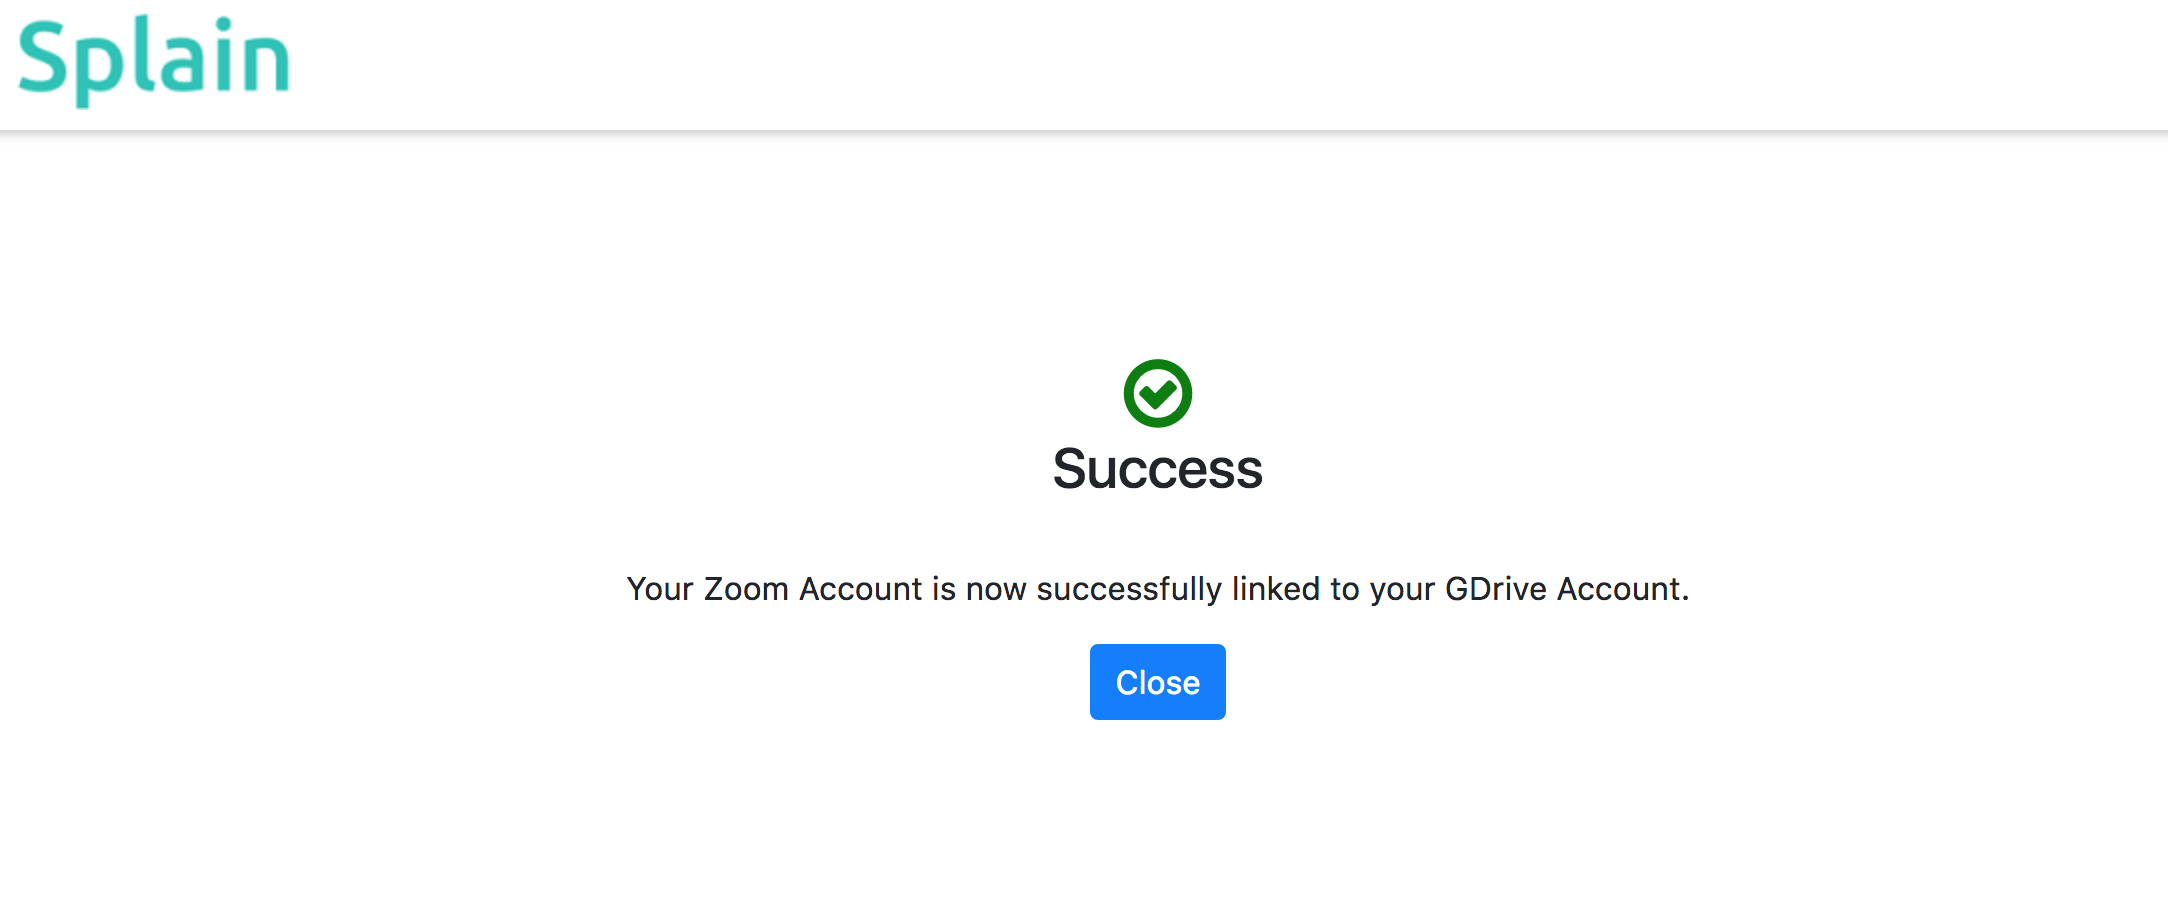 This completes connecting your zoom and drive accounts.